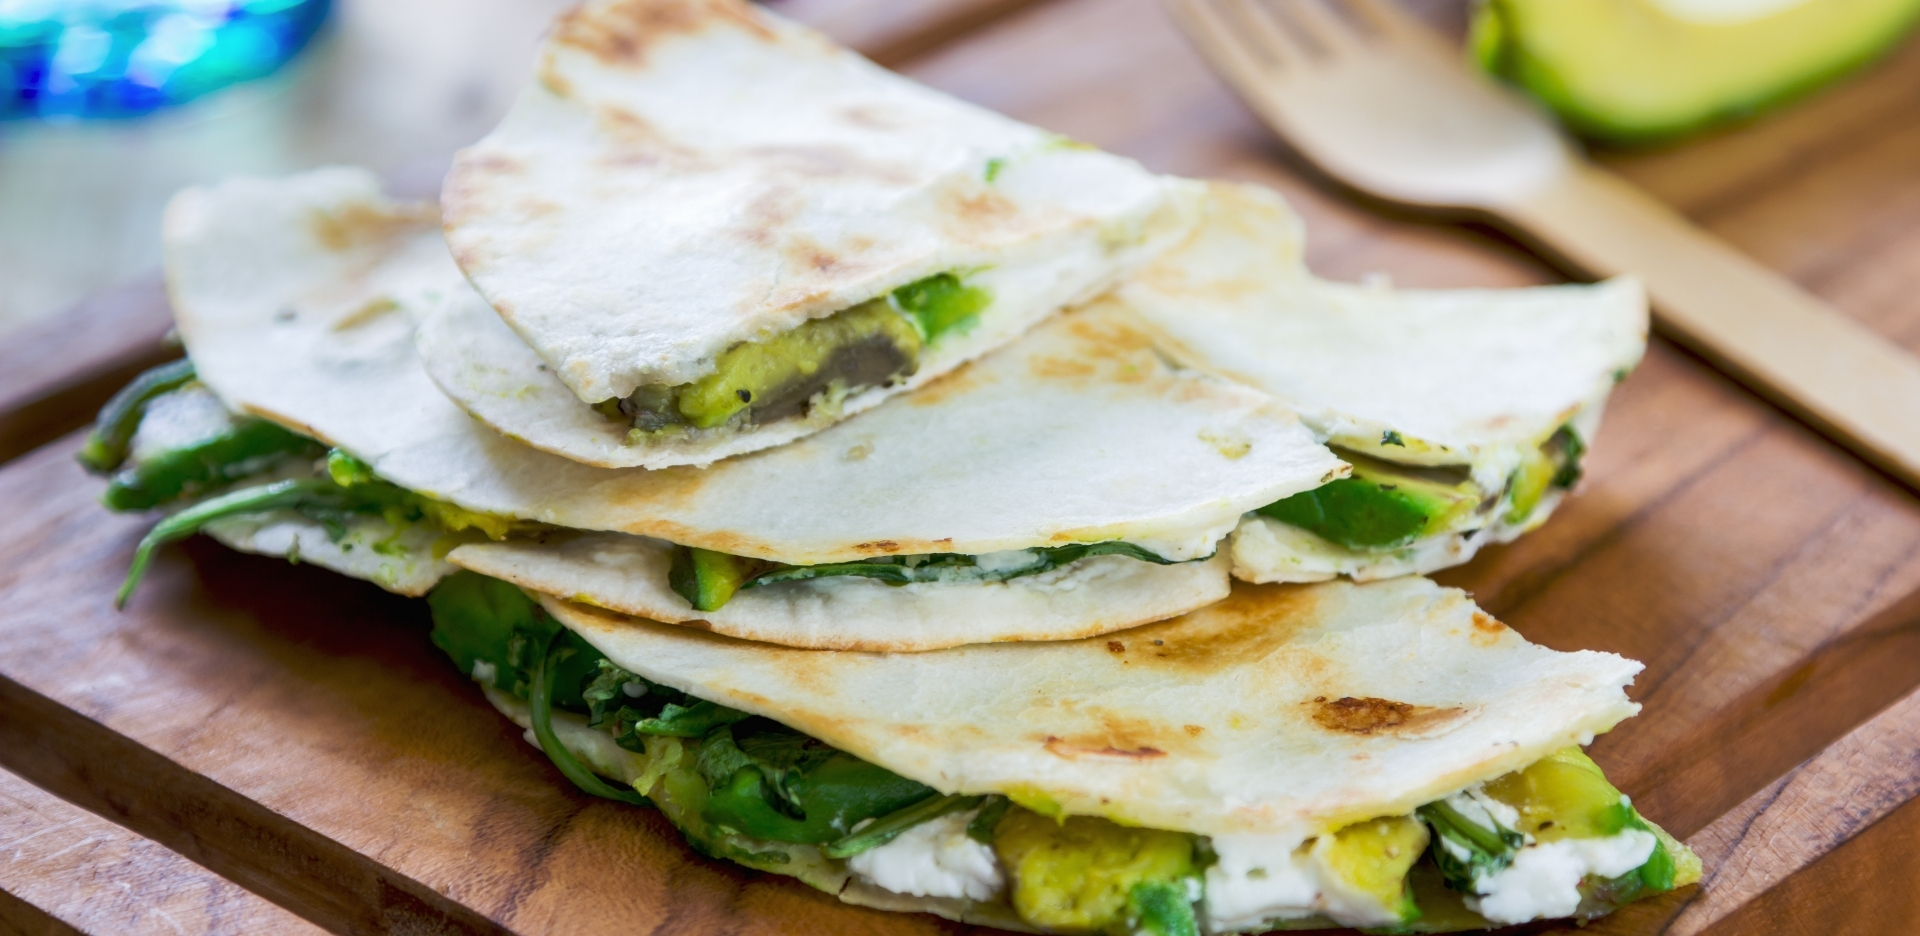 Spinach, Avocado and Goats Cheese Quesadillas